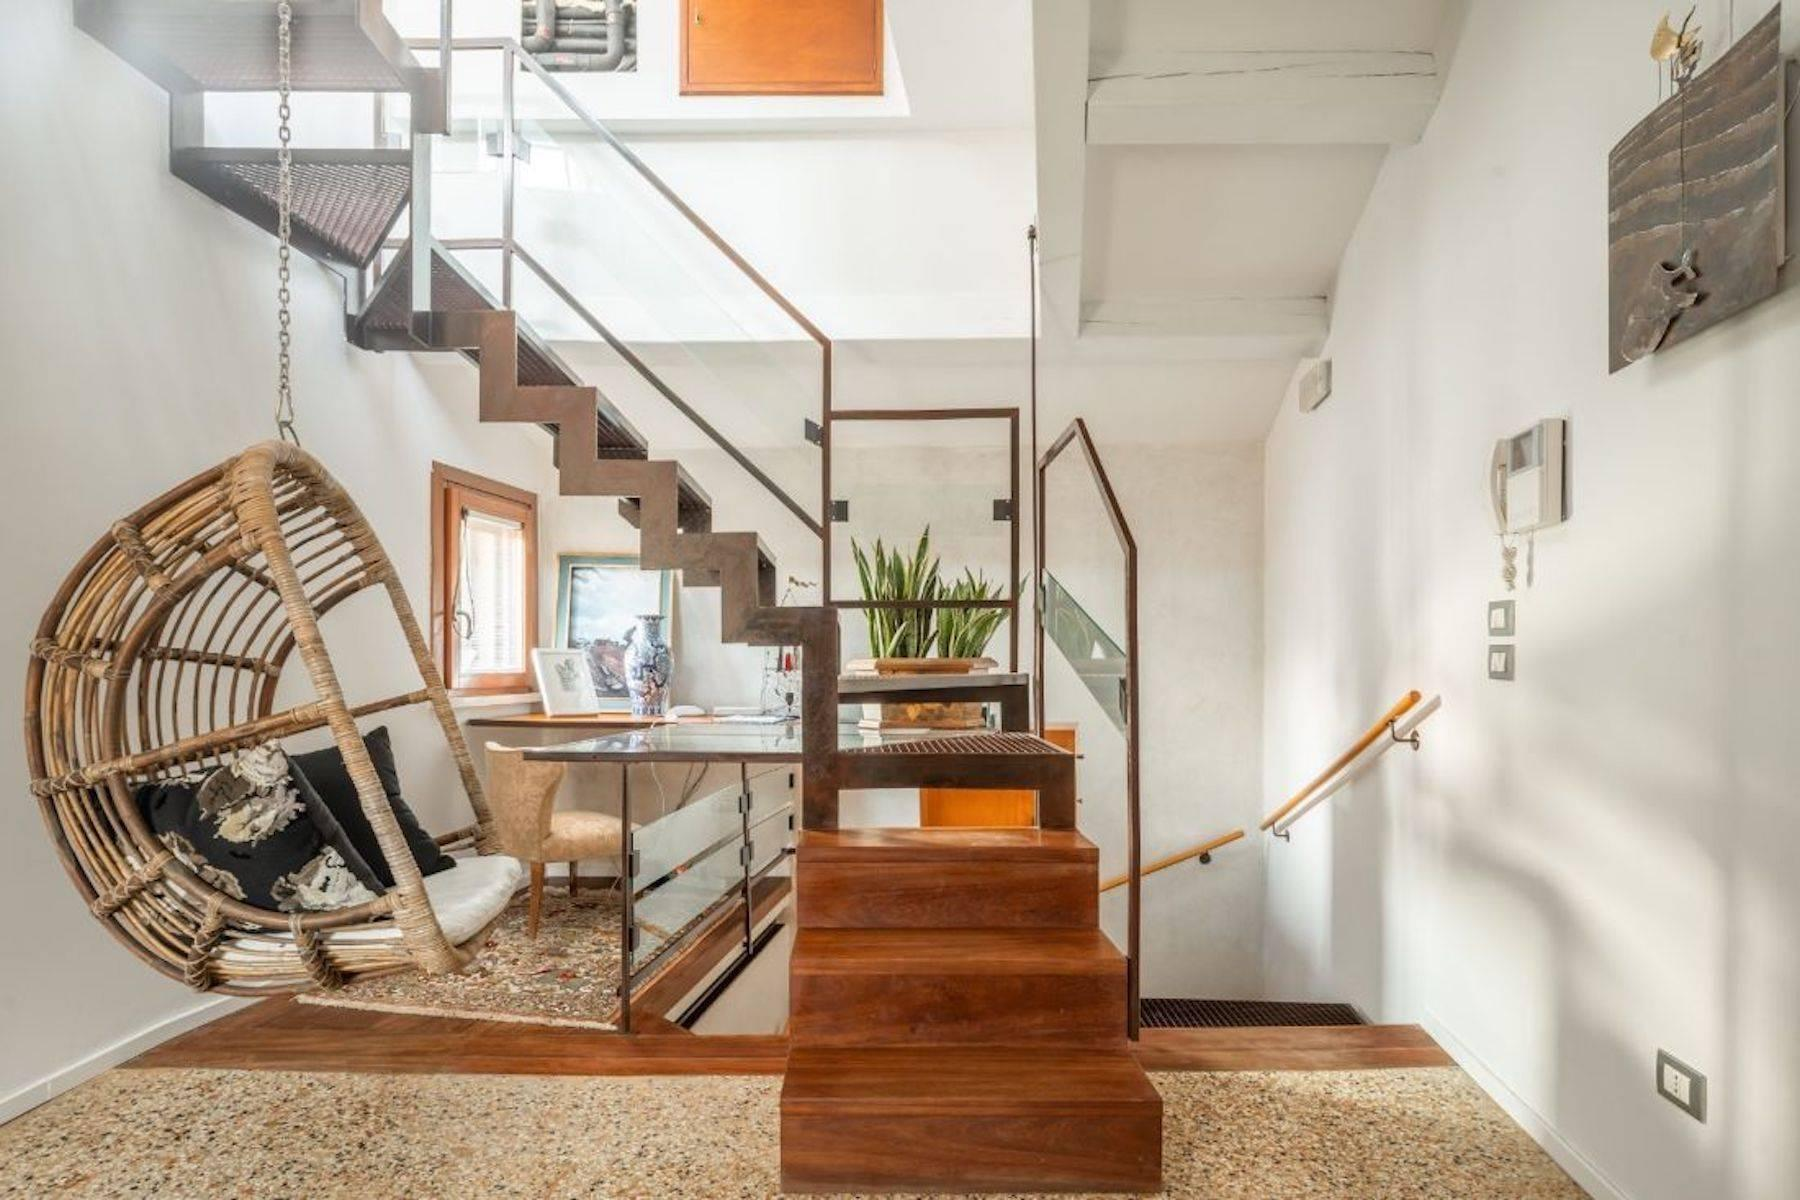 Frari stylish 4 storey house with altana terrace - 10